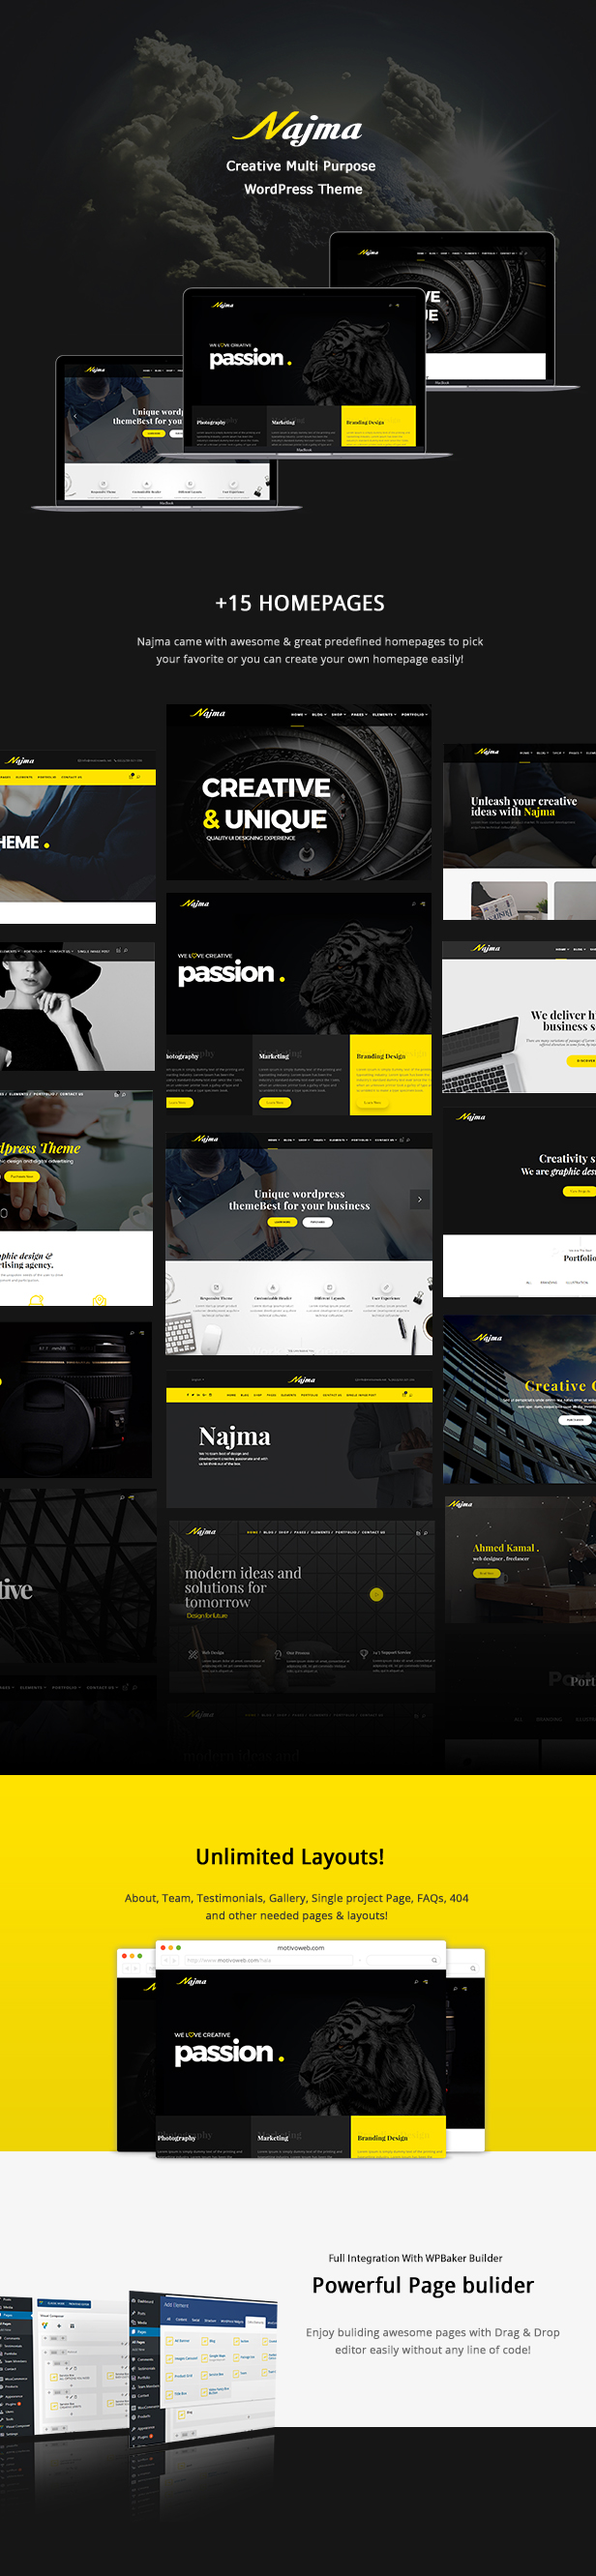 Najma Creative Multi-Purpose WordPress Theme